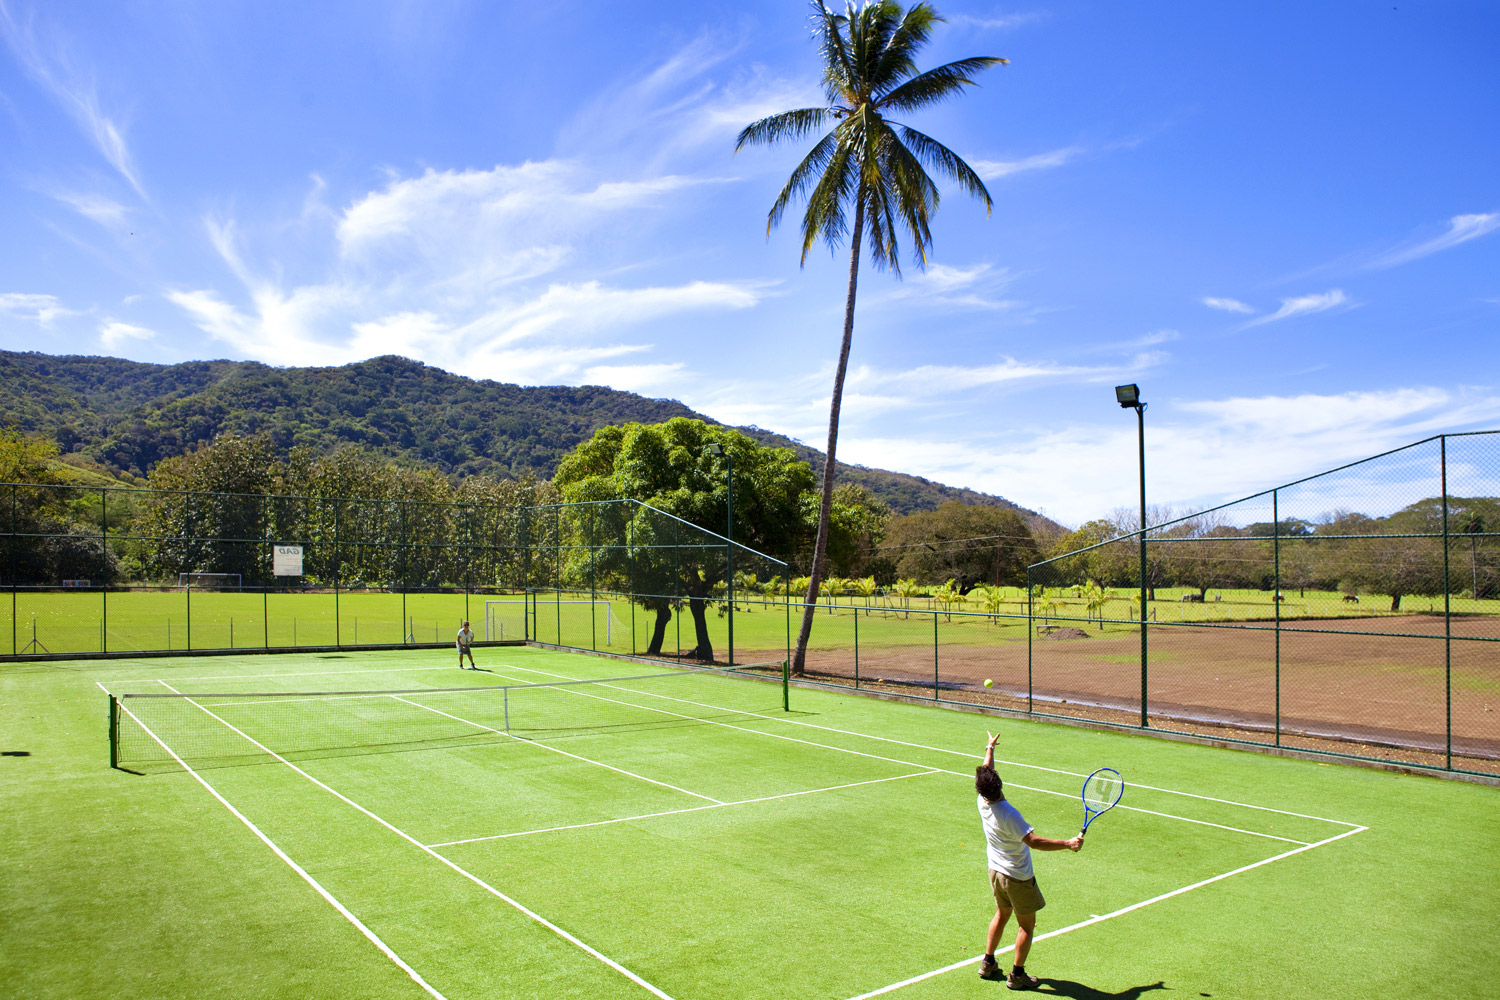 FincaAustria_tennis_court-3rs.jpg